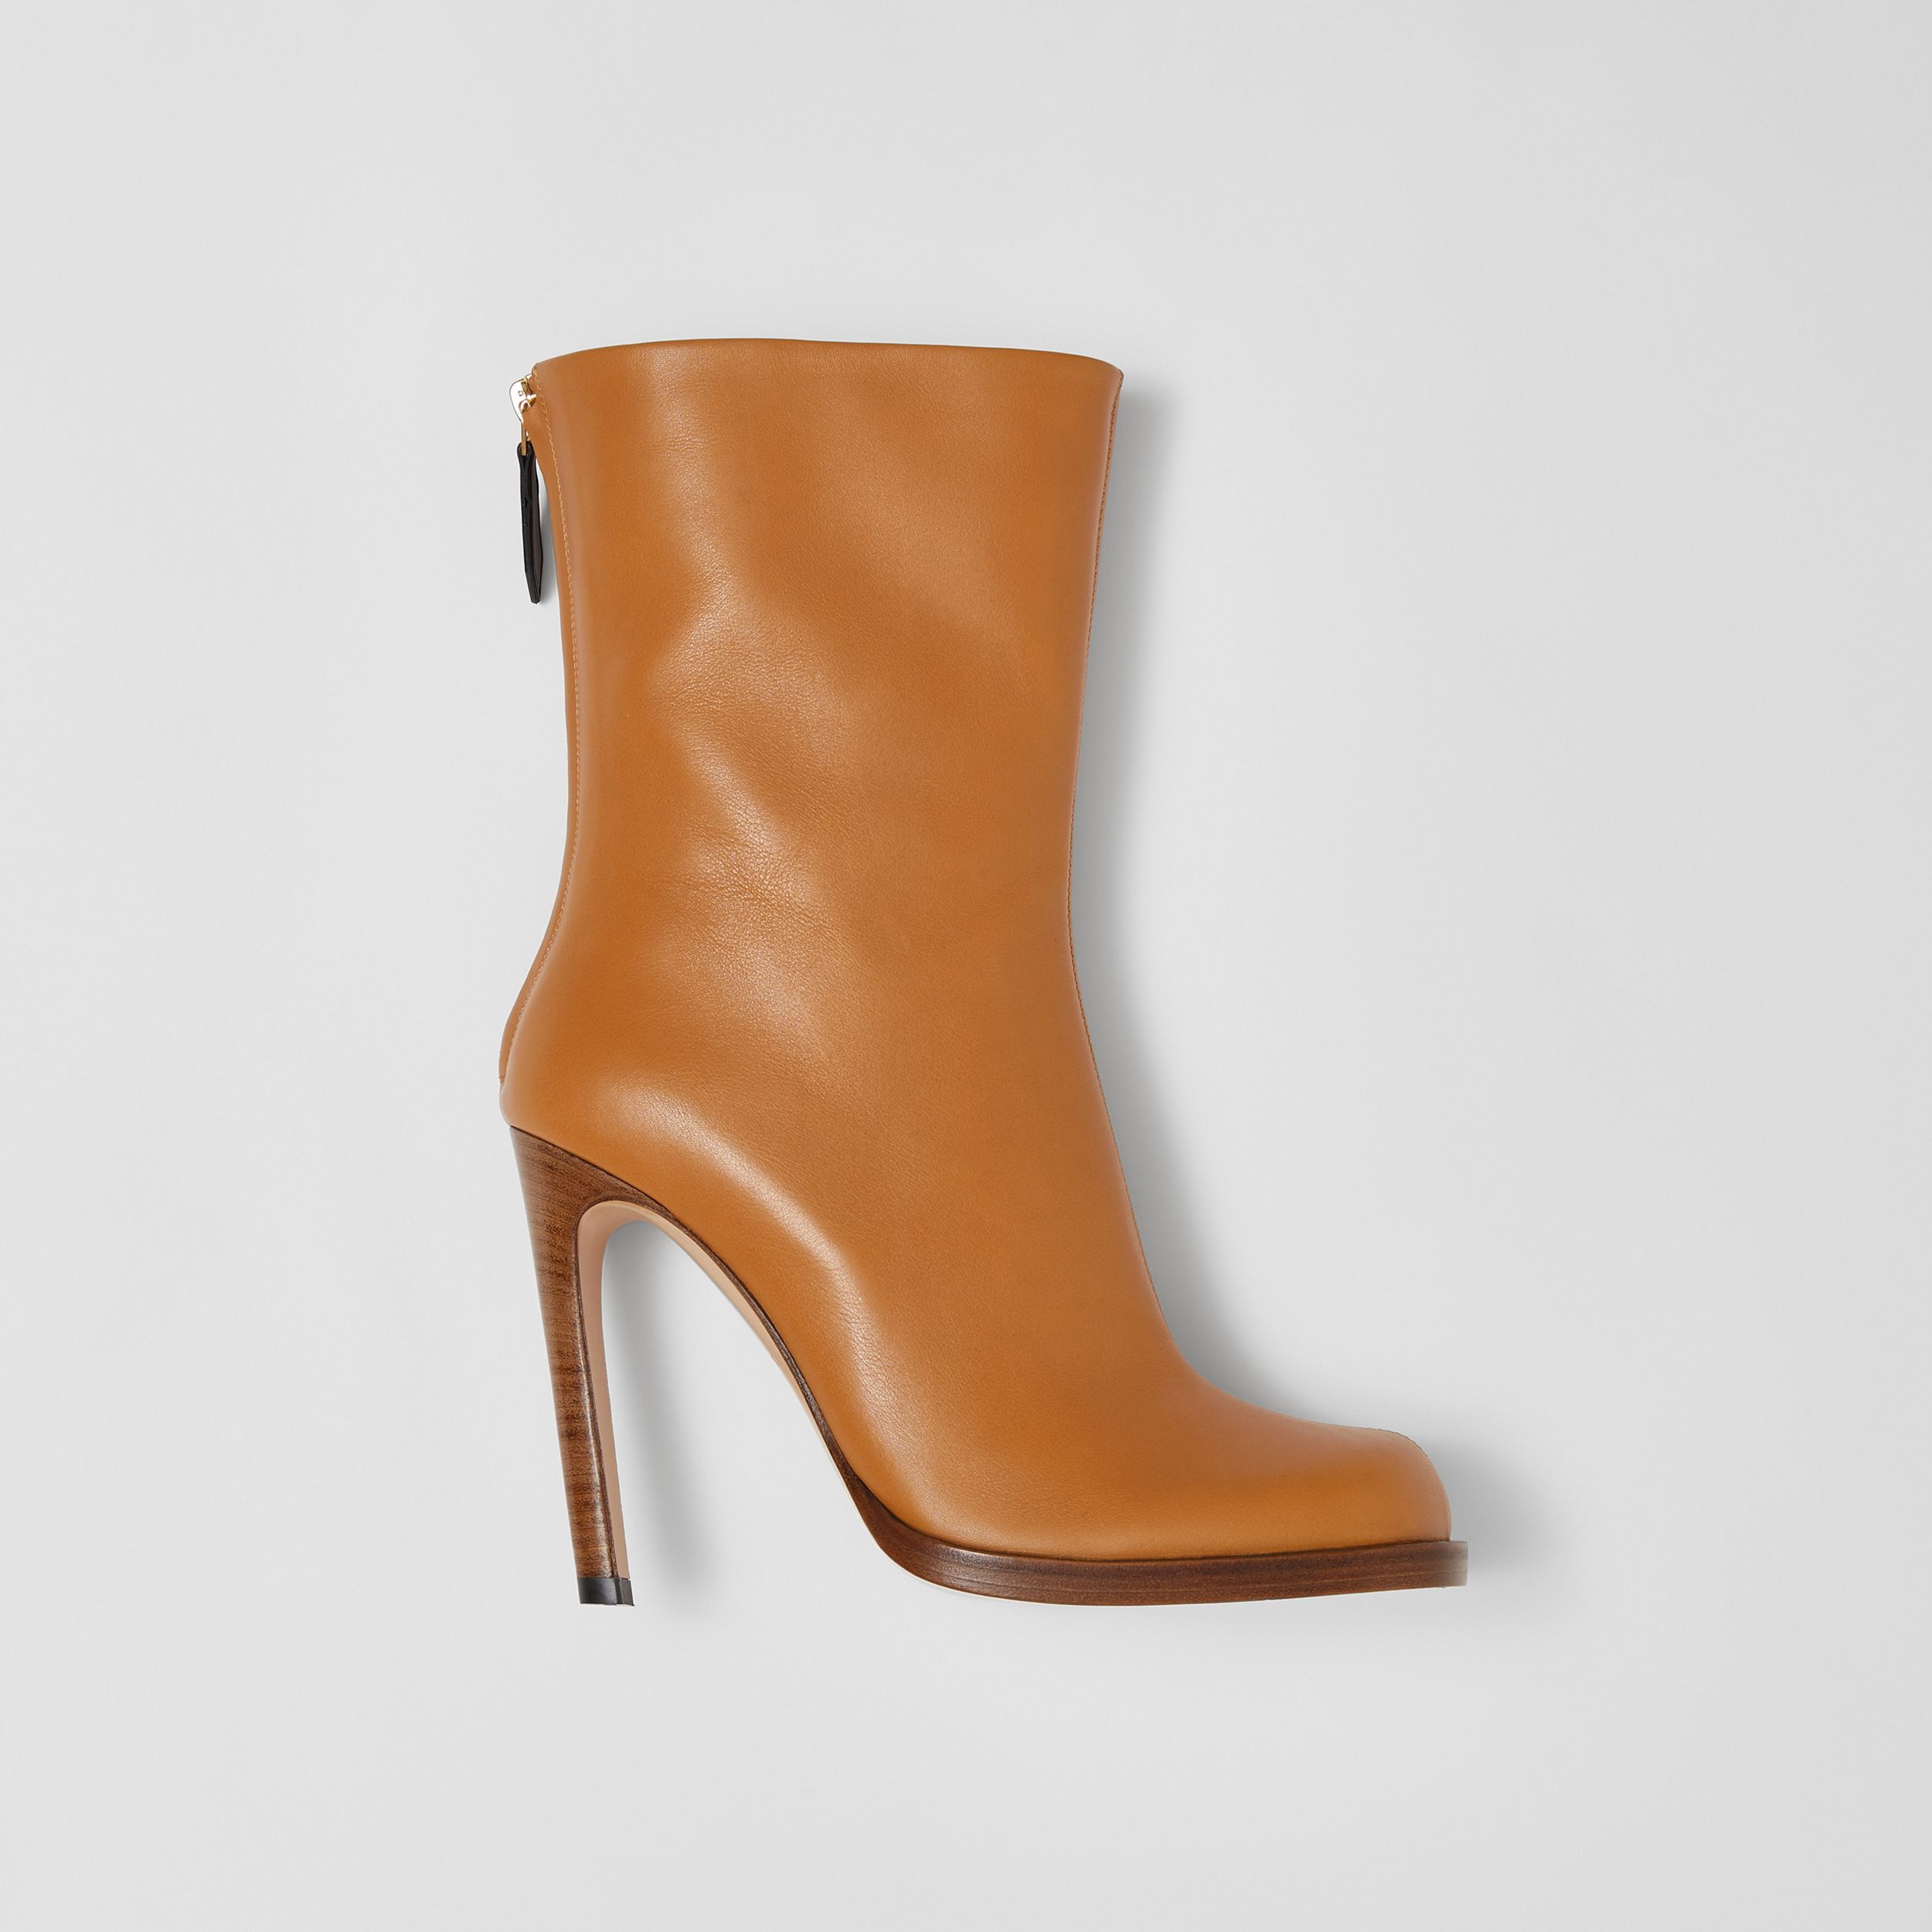 Vintage Check-lined Leather Ankle Boots in Ochre - Women | Burberry - 1